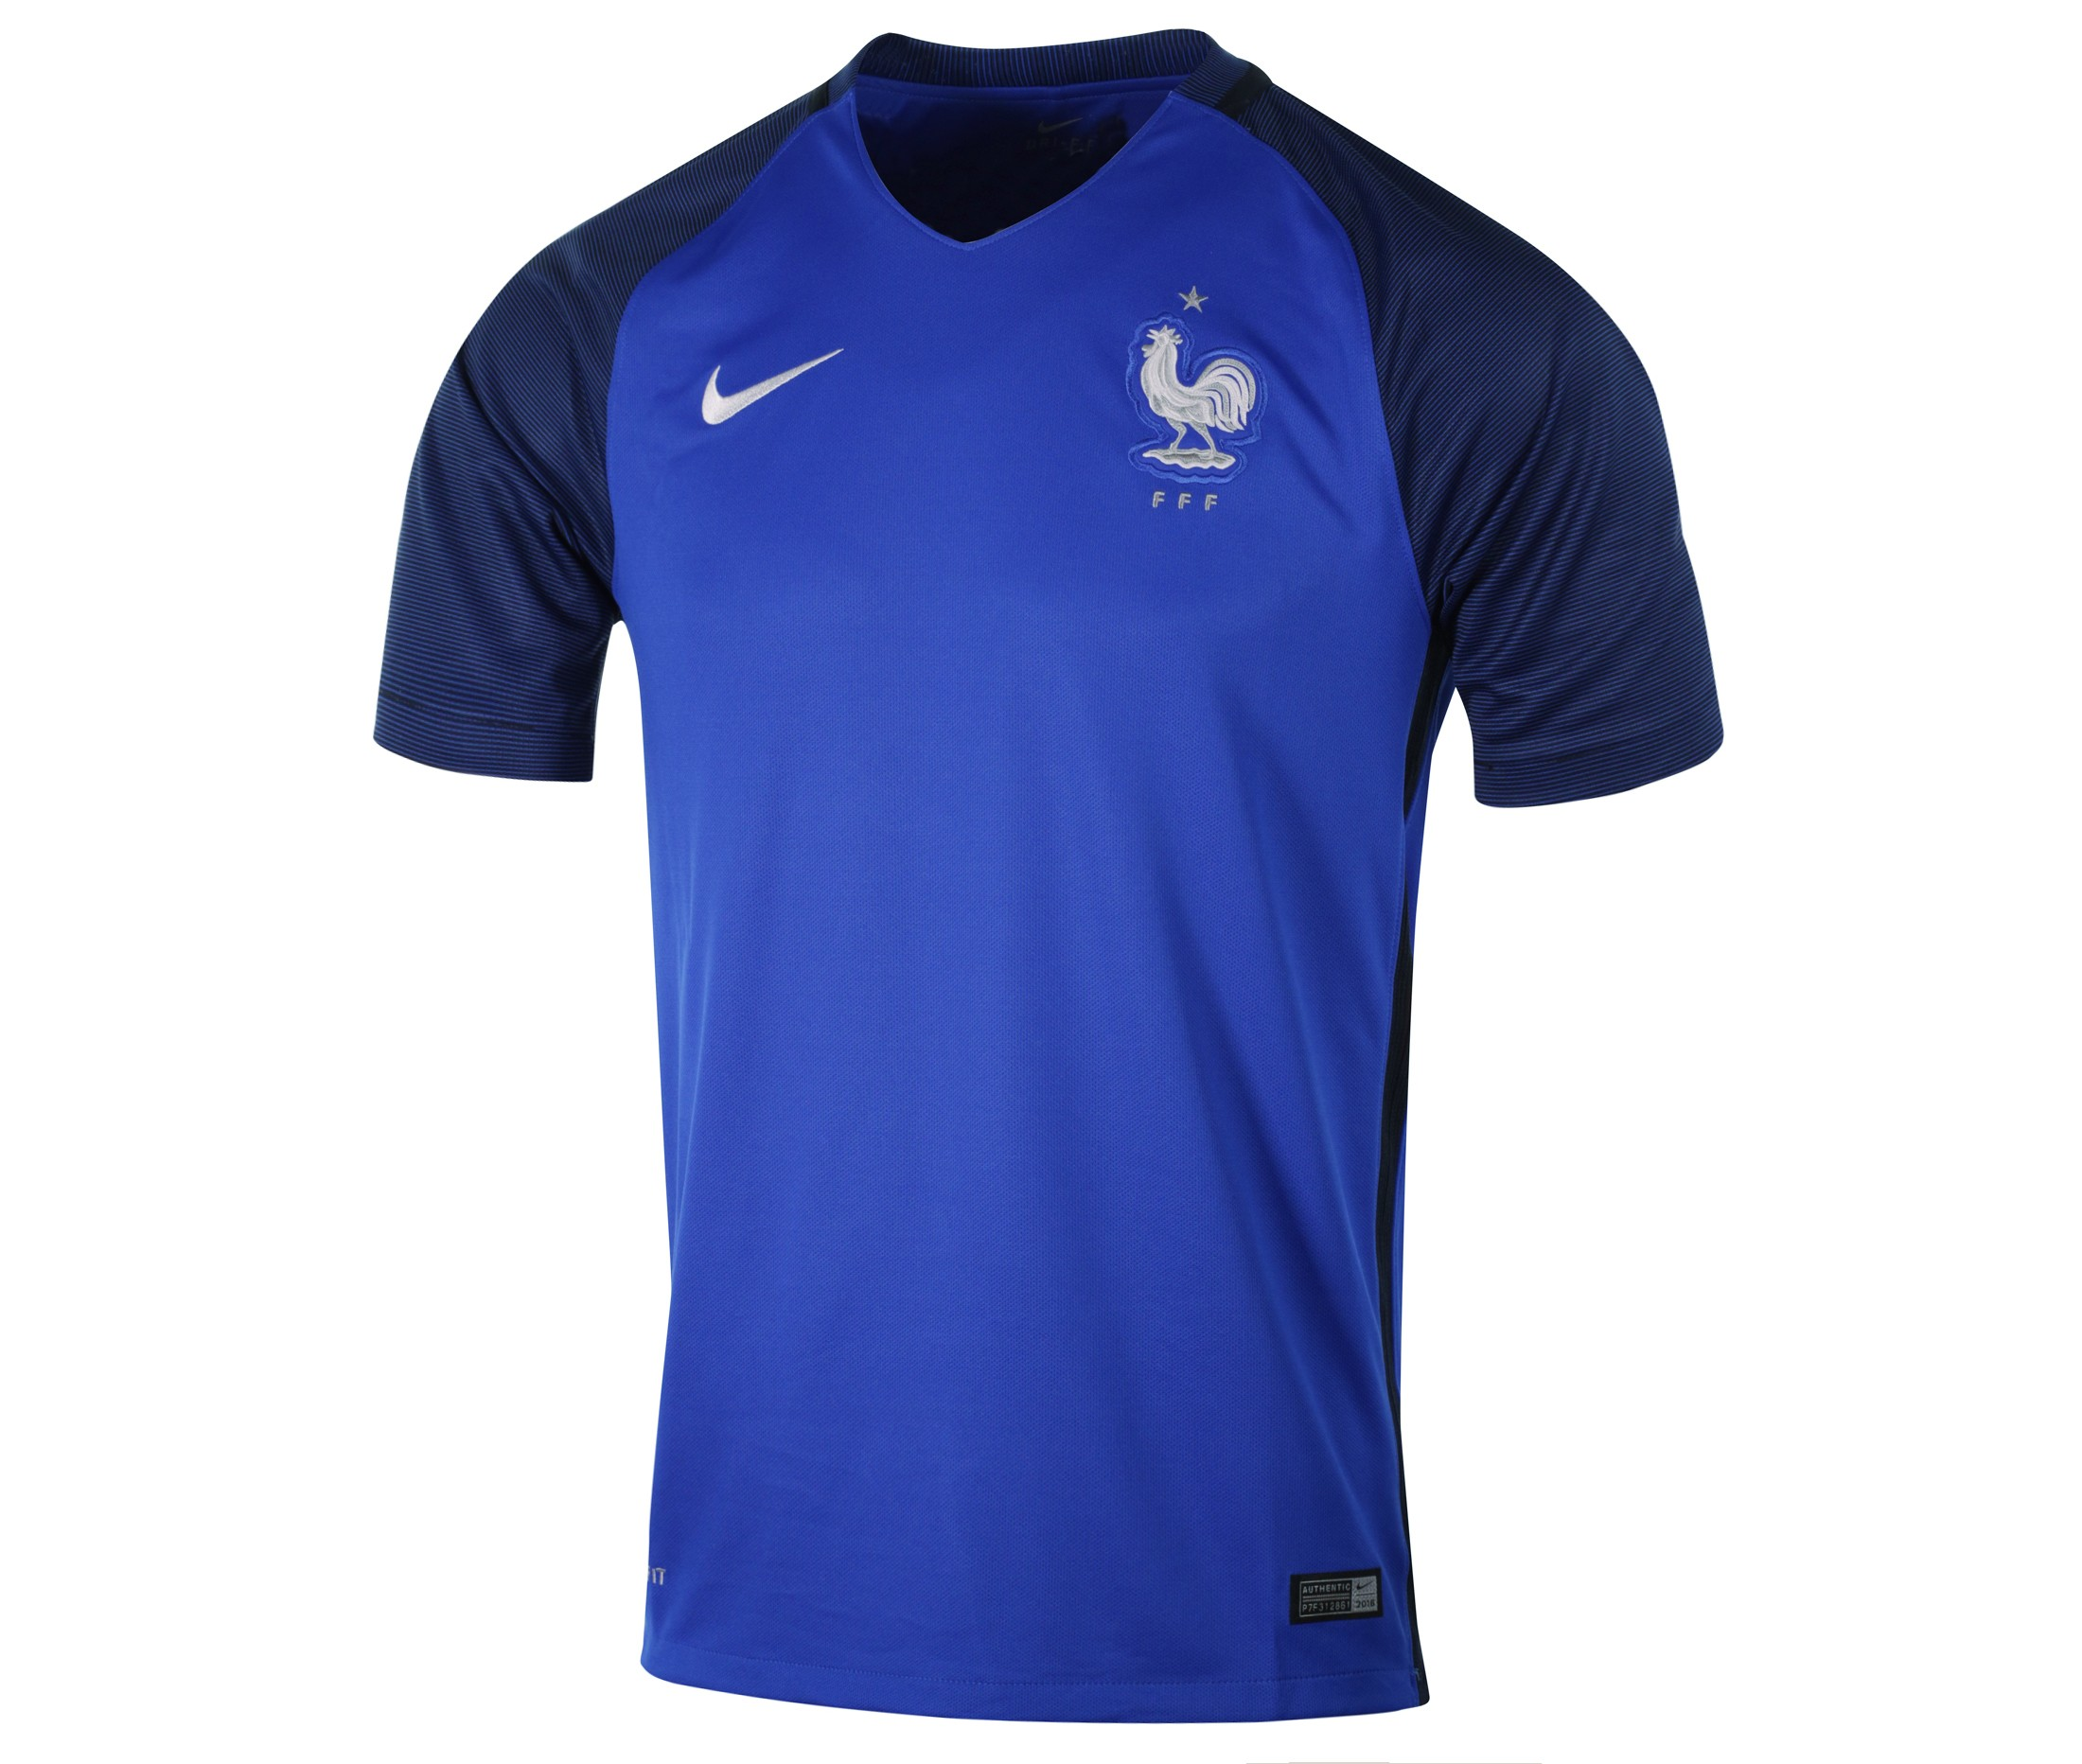 maillot domicile equipe de france 2016 2017 maillots football boutique. Black Bedroom Furniture Sets. Home Design Ideas